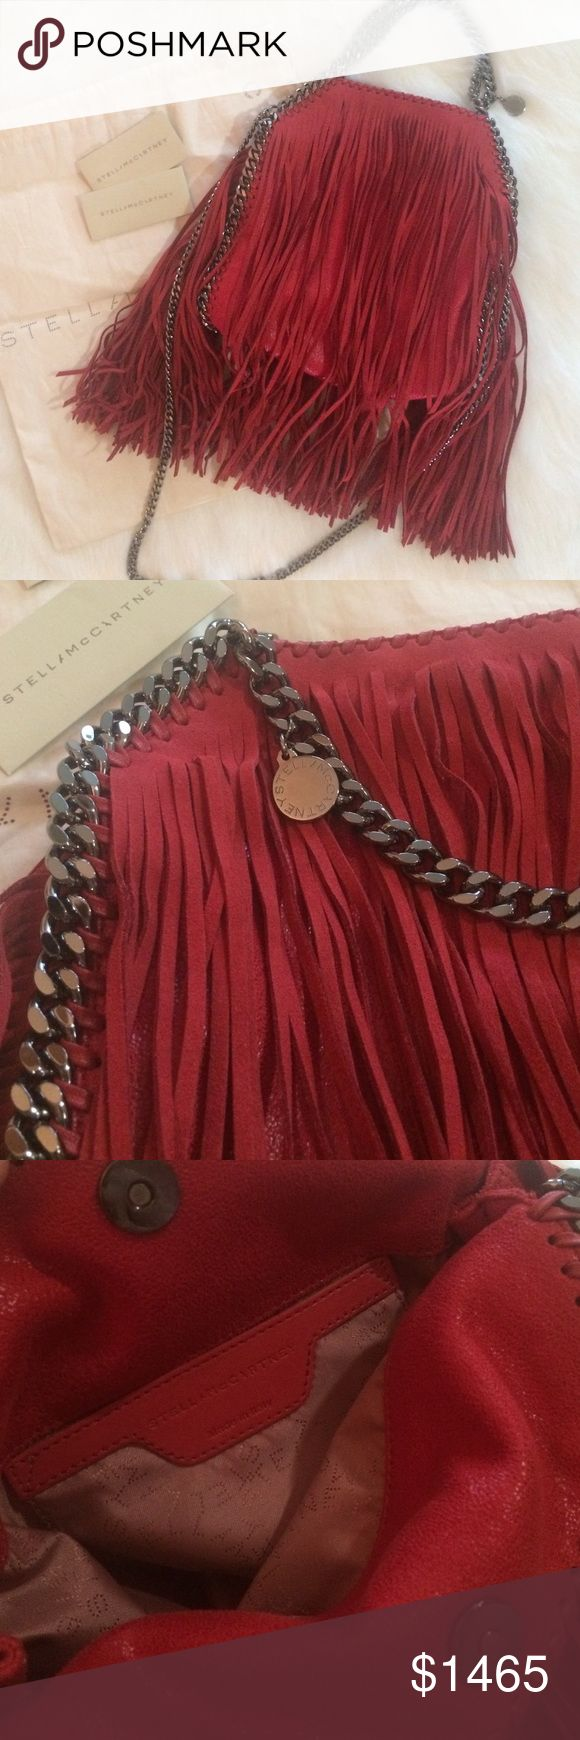 ⭐️SALE! NWOT*Stella McCartney MiniFringe Falabella Authentic. Never used. Mini cherry falabella with gunmetal chain. Dust bag and original tags included. Stella McCartney Bags